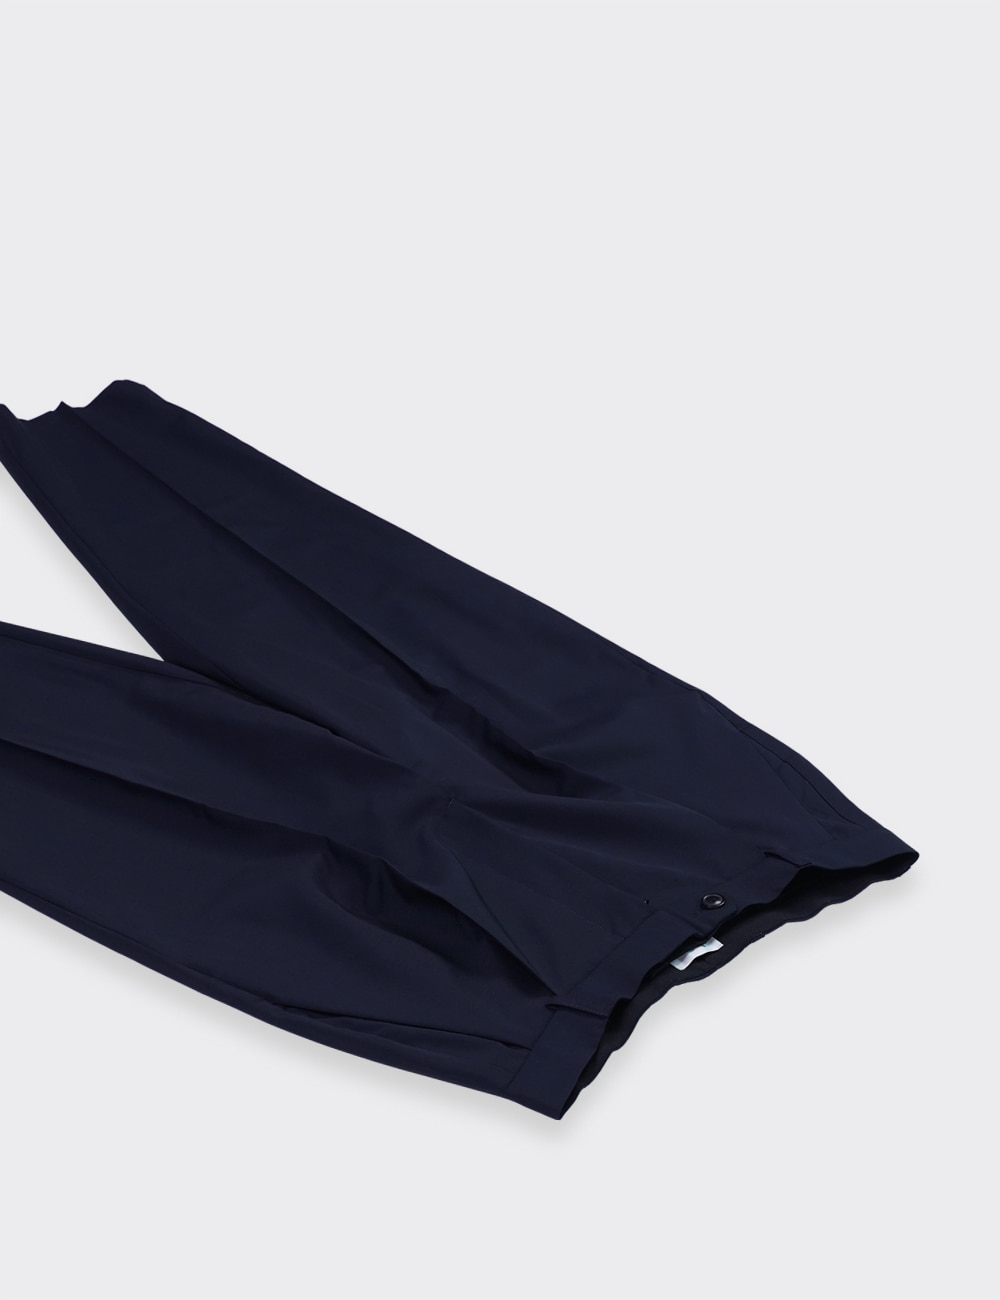 lownn : PANTARON(PANTS) AMPLE V2 (NAVY)